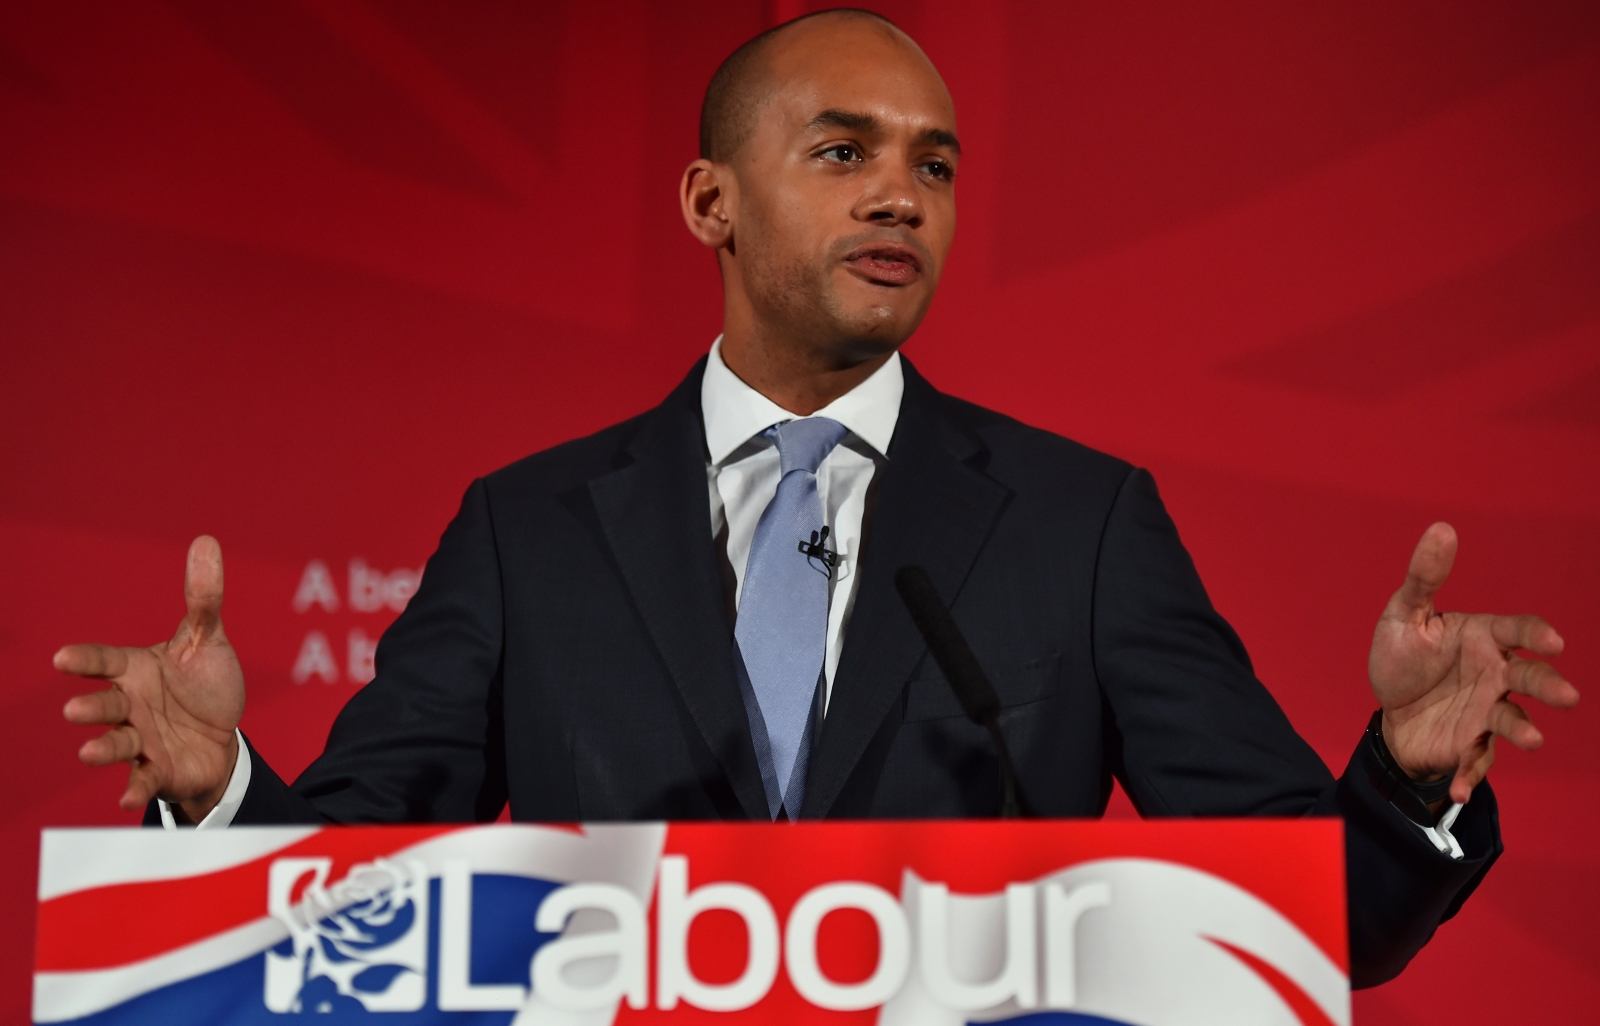 Chuka Umunna unity speech